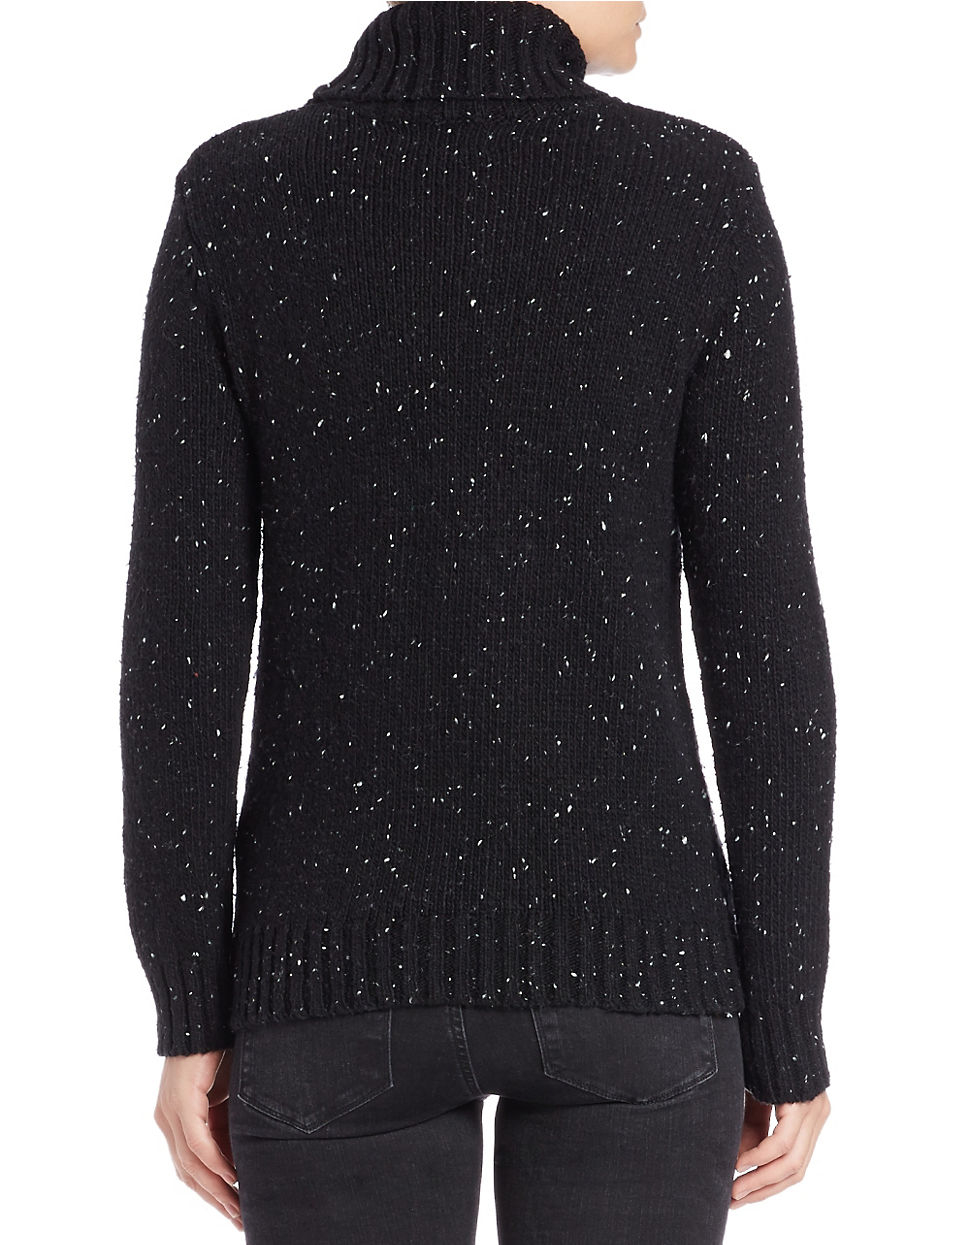 Lyst Lord Taylor Knit Turtleneck Sweater In Black